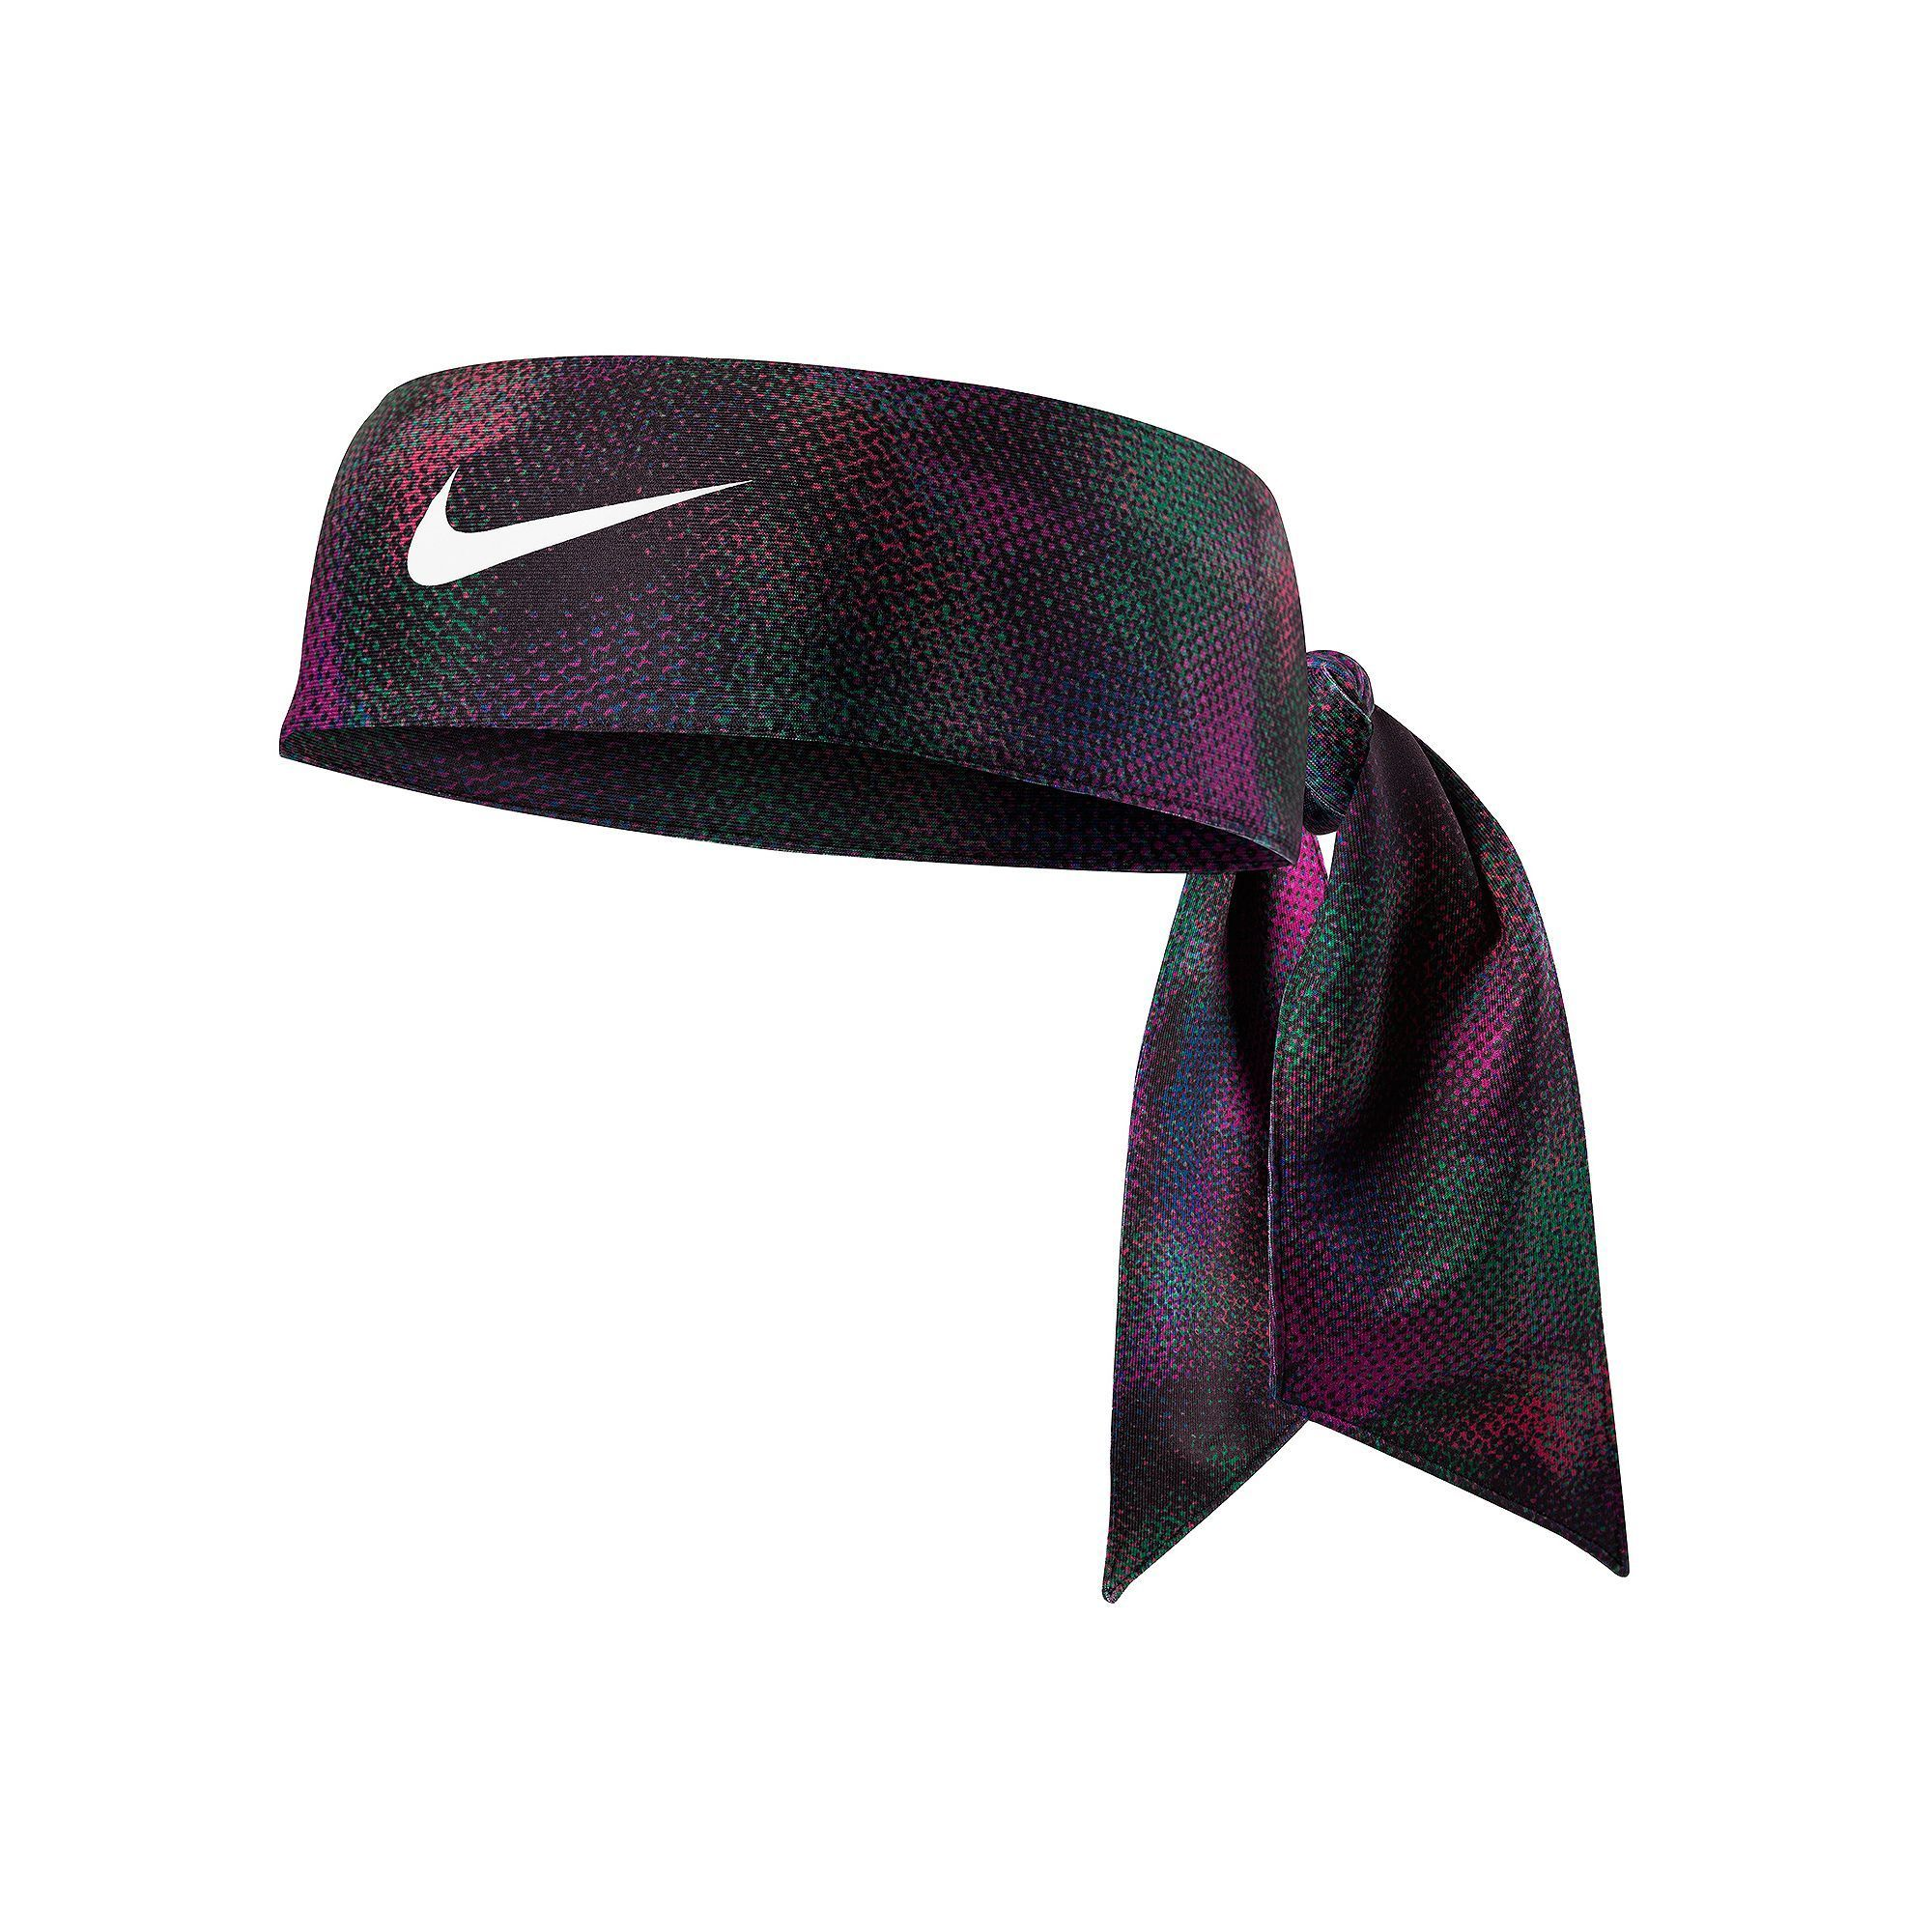 92fb107bb9ec Nike Dri-FIT 2.0 Tie Head Wrap in 2019